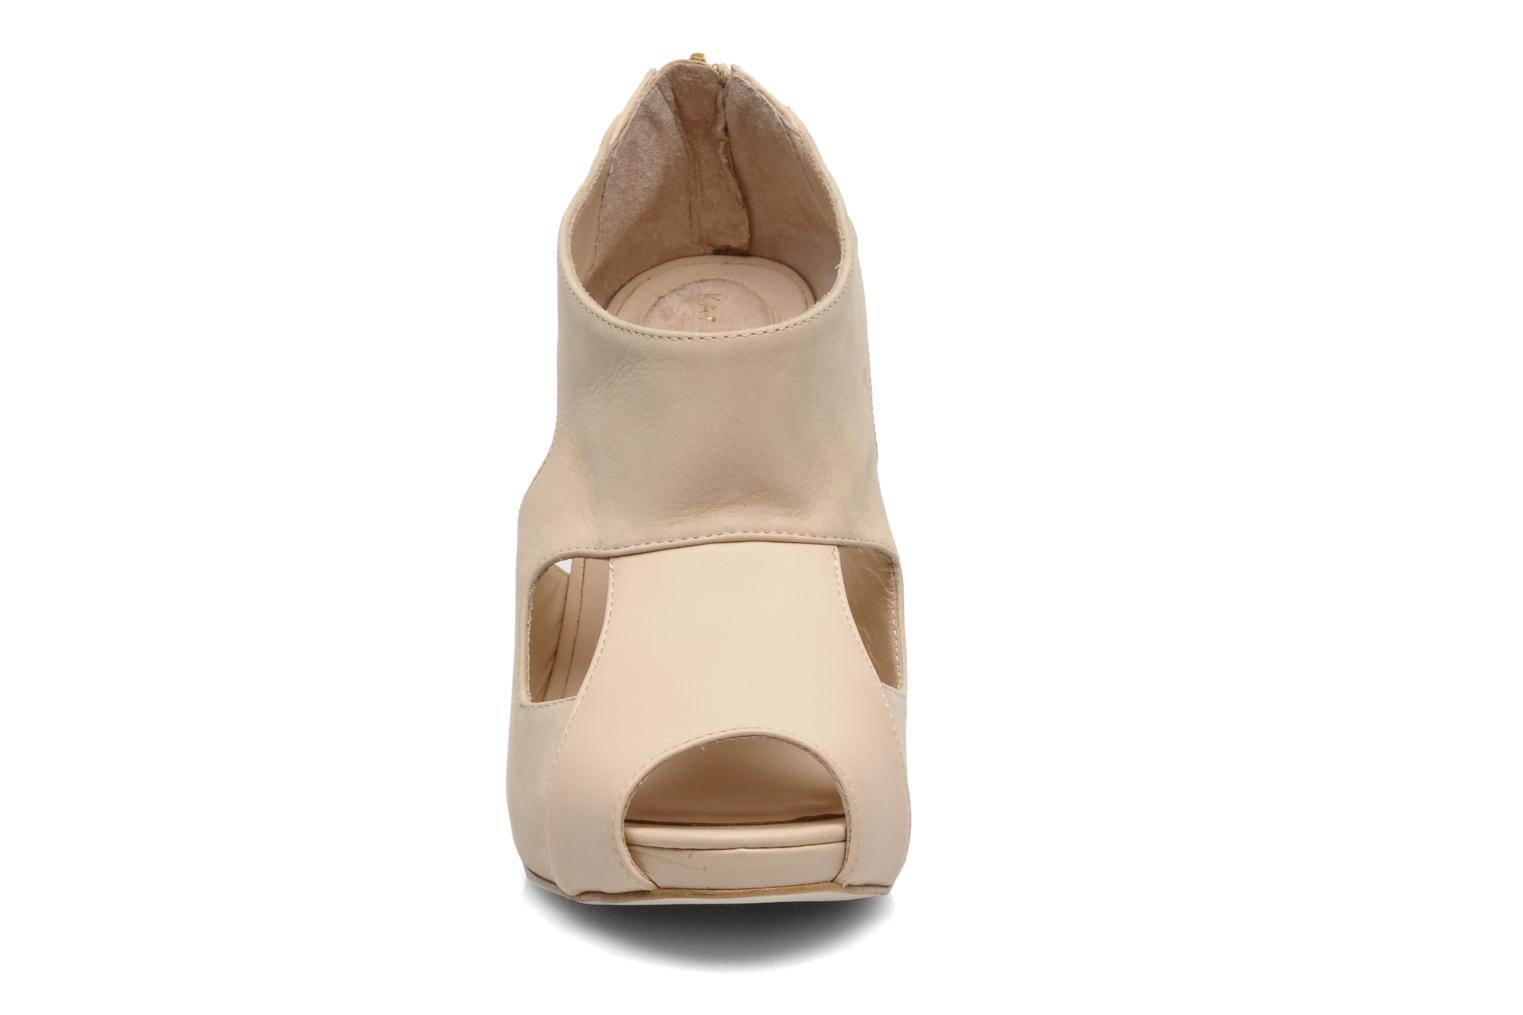 LUCY NUDE LEATHER NUDE NUBUCK